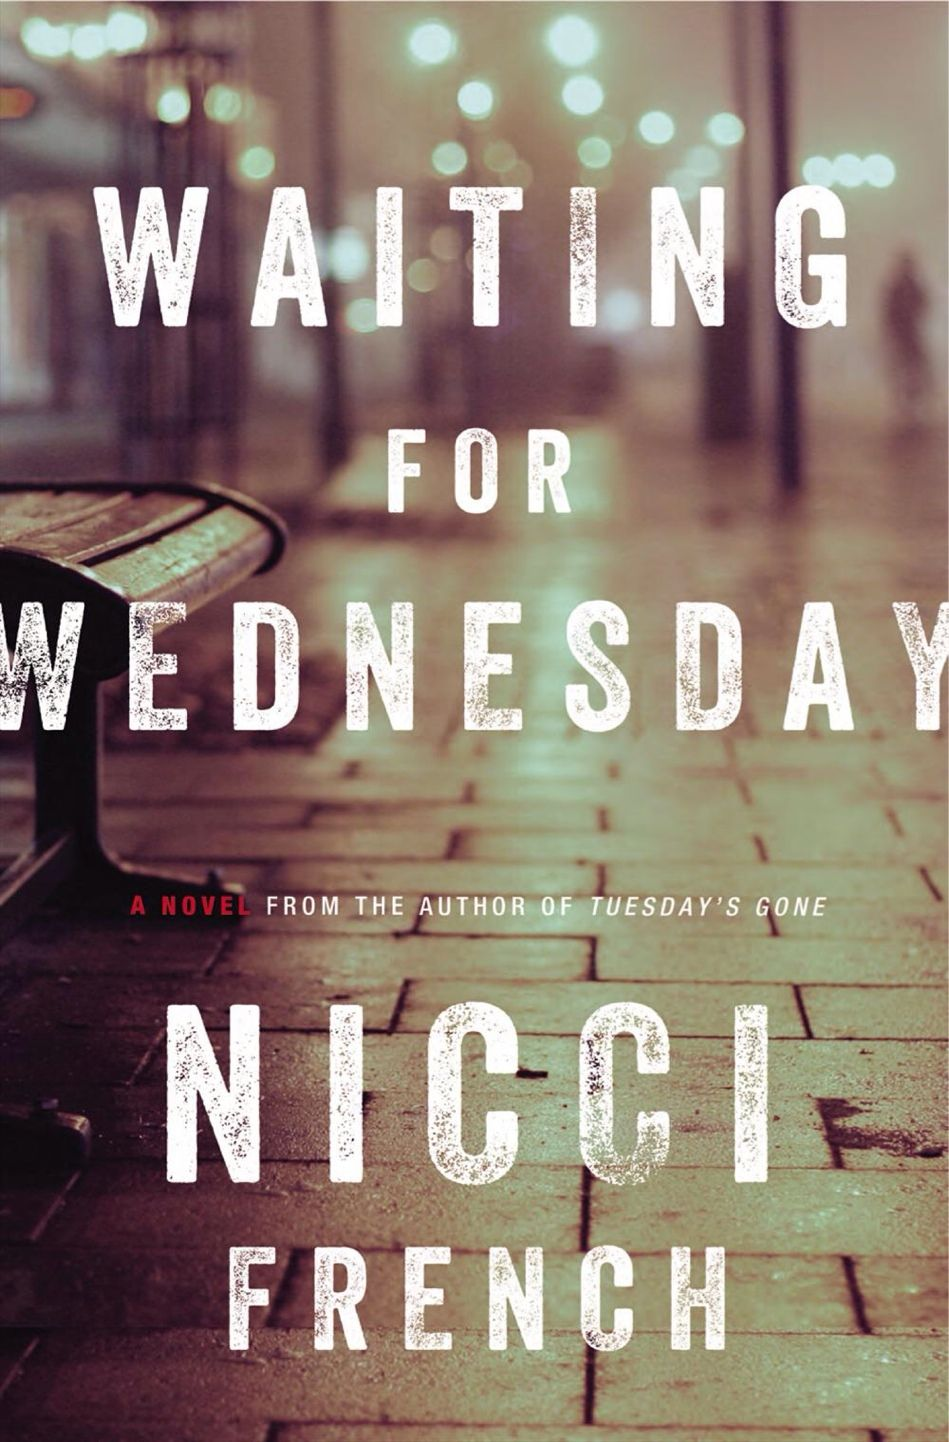 WAITING FOR WEDNESDAY by Nicci French is a gripping third